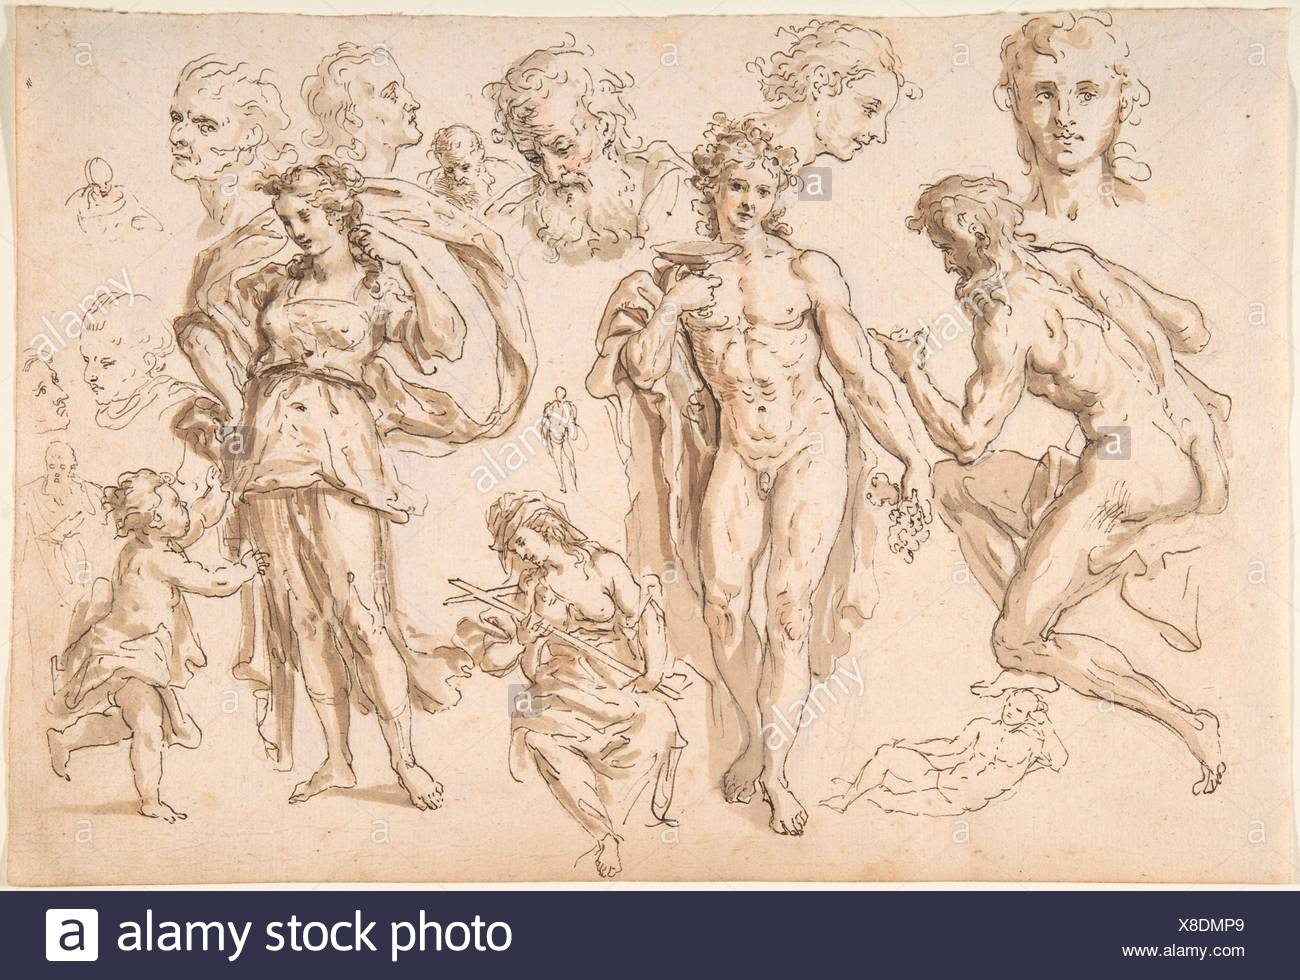 Recto: figure and head-studies (including Bacchus); Verso: four main figure studies repeated from the recto. Artist: Bartholomaeus Ignaz Weiss - Stock Image